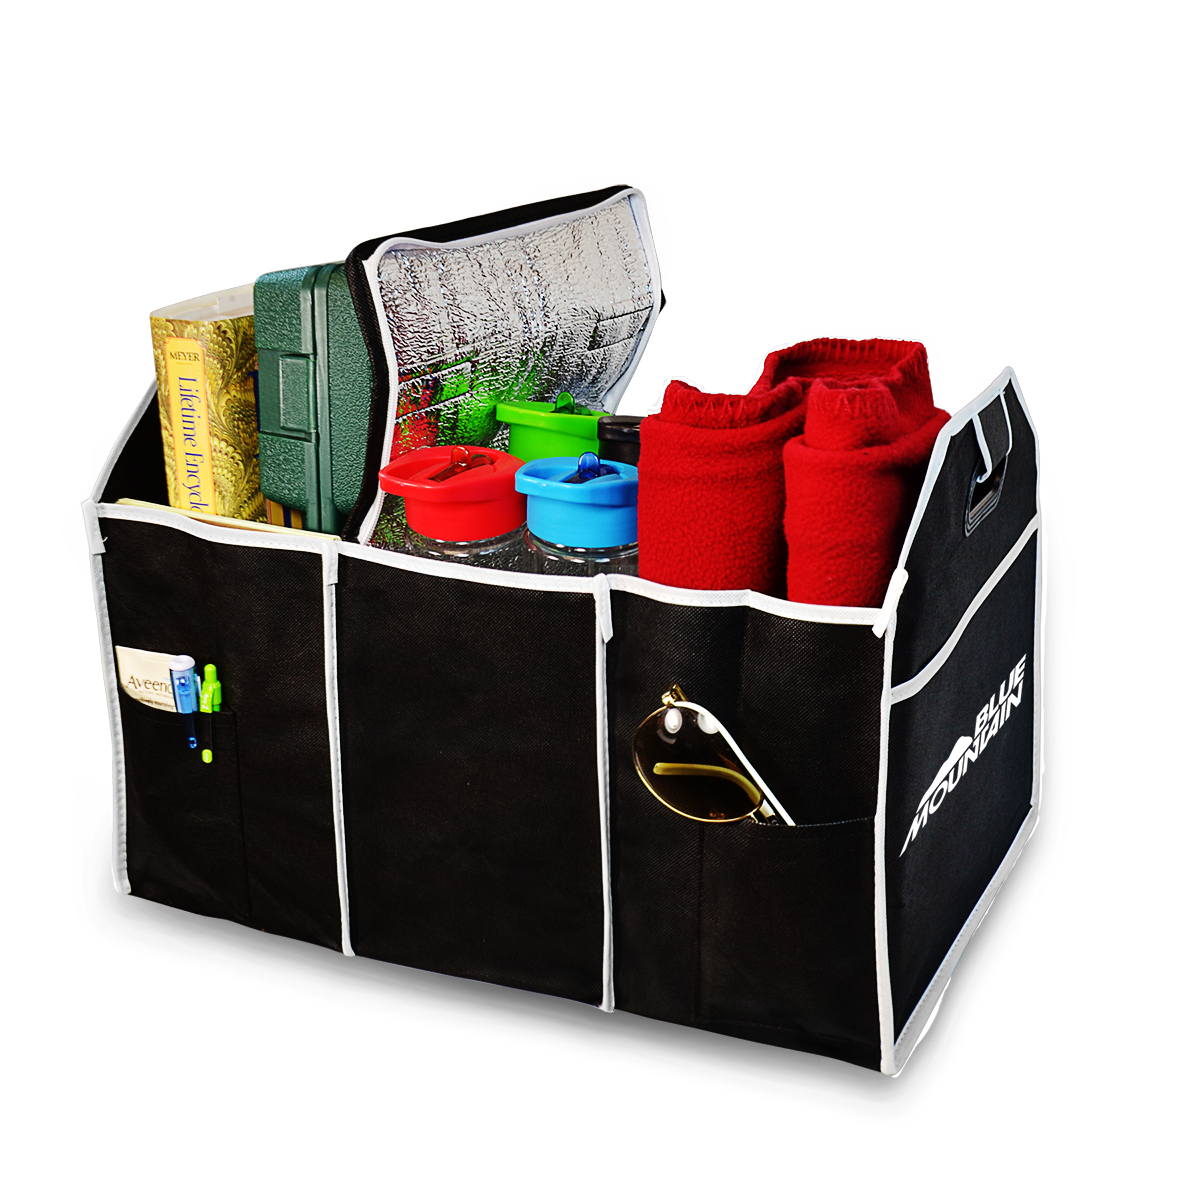 EXPANDABLE AUTO TRUNK ORGANIZER W/ COOLER COMPARTMENT